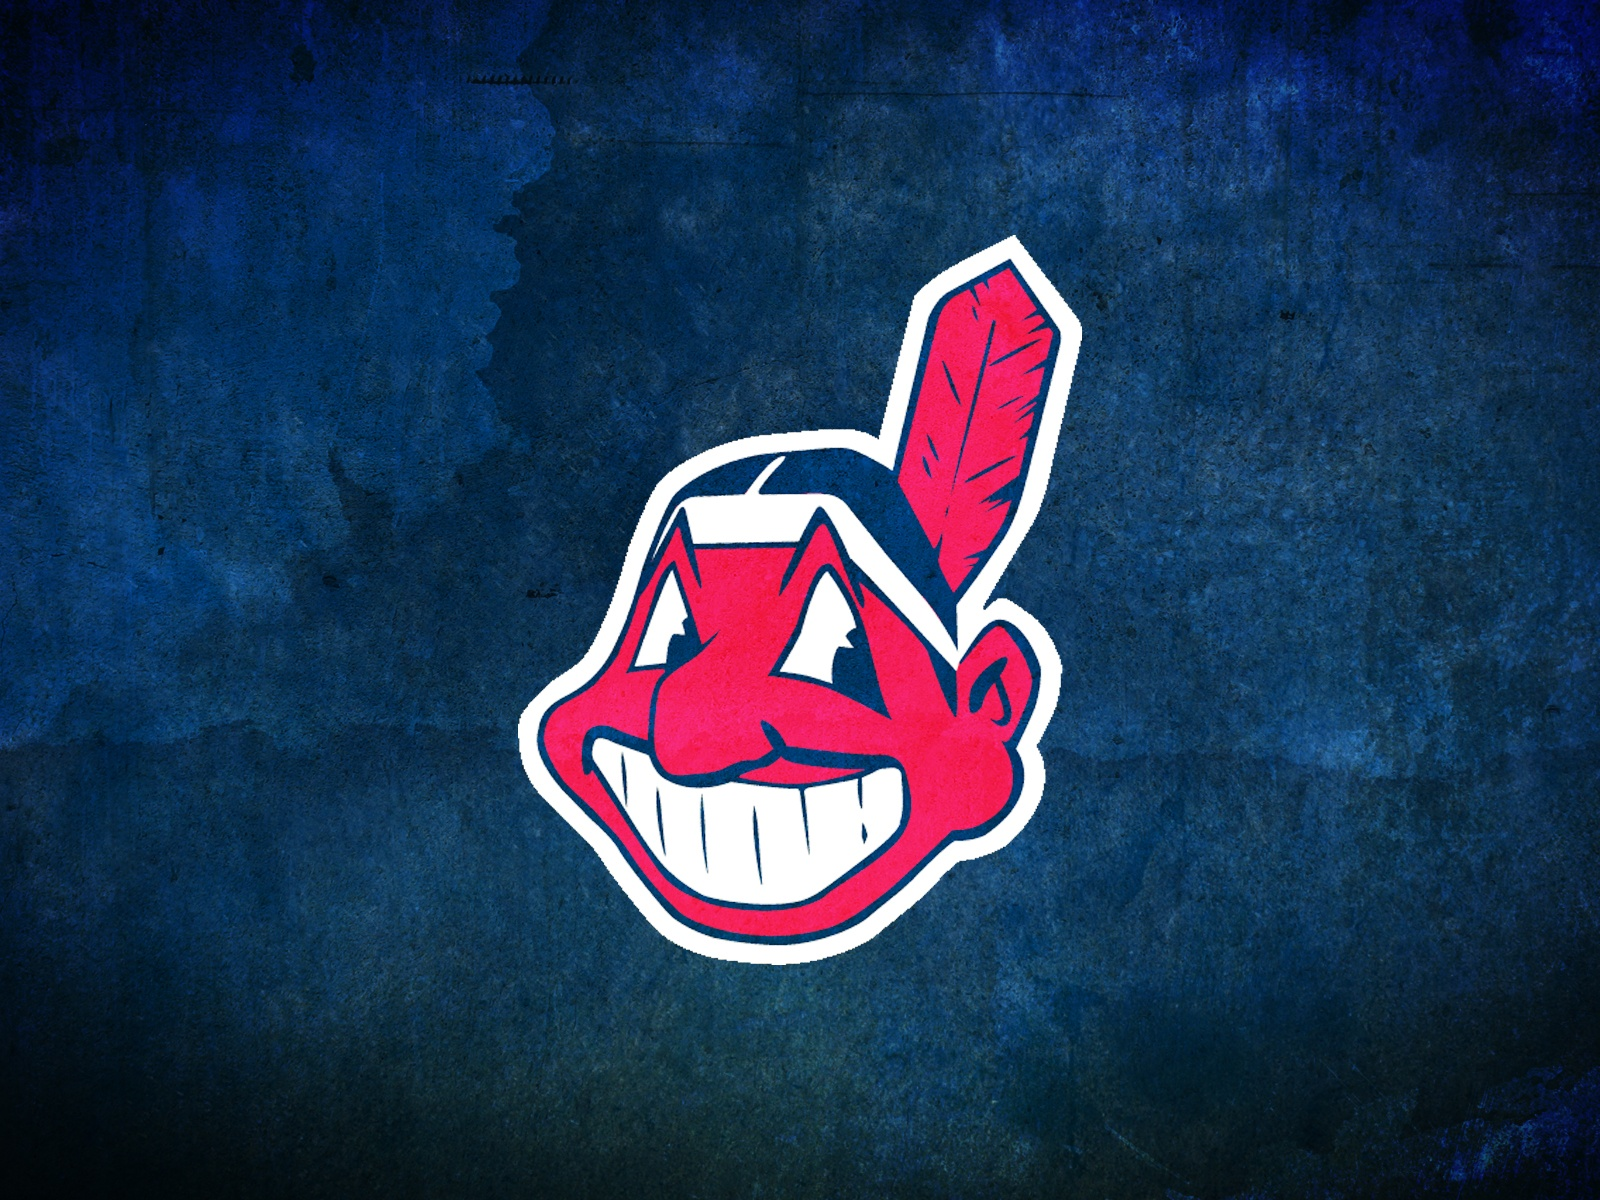 1600x1200 - Cleveland Indians Wallpapers 15